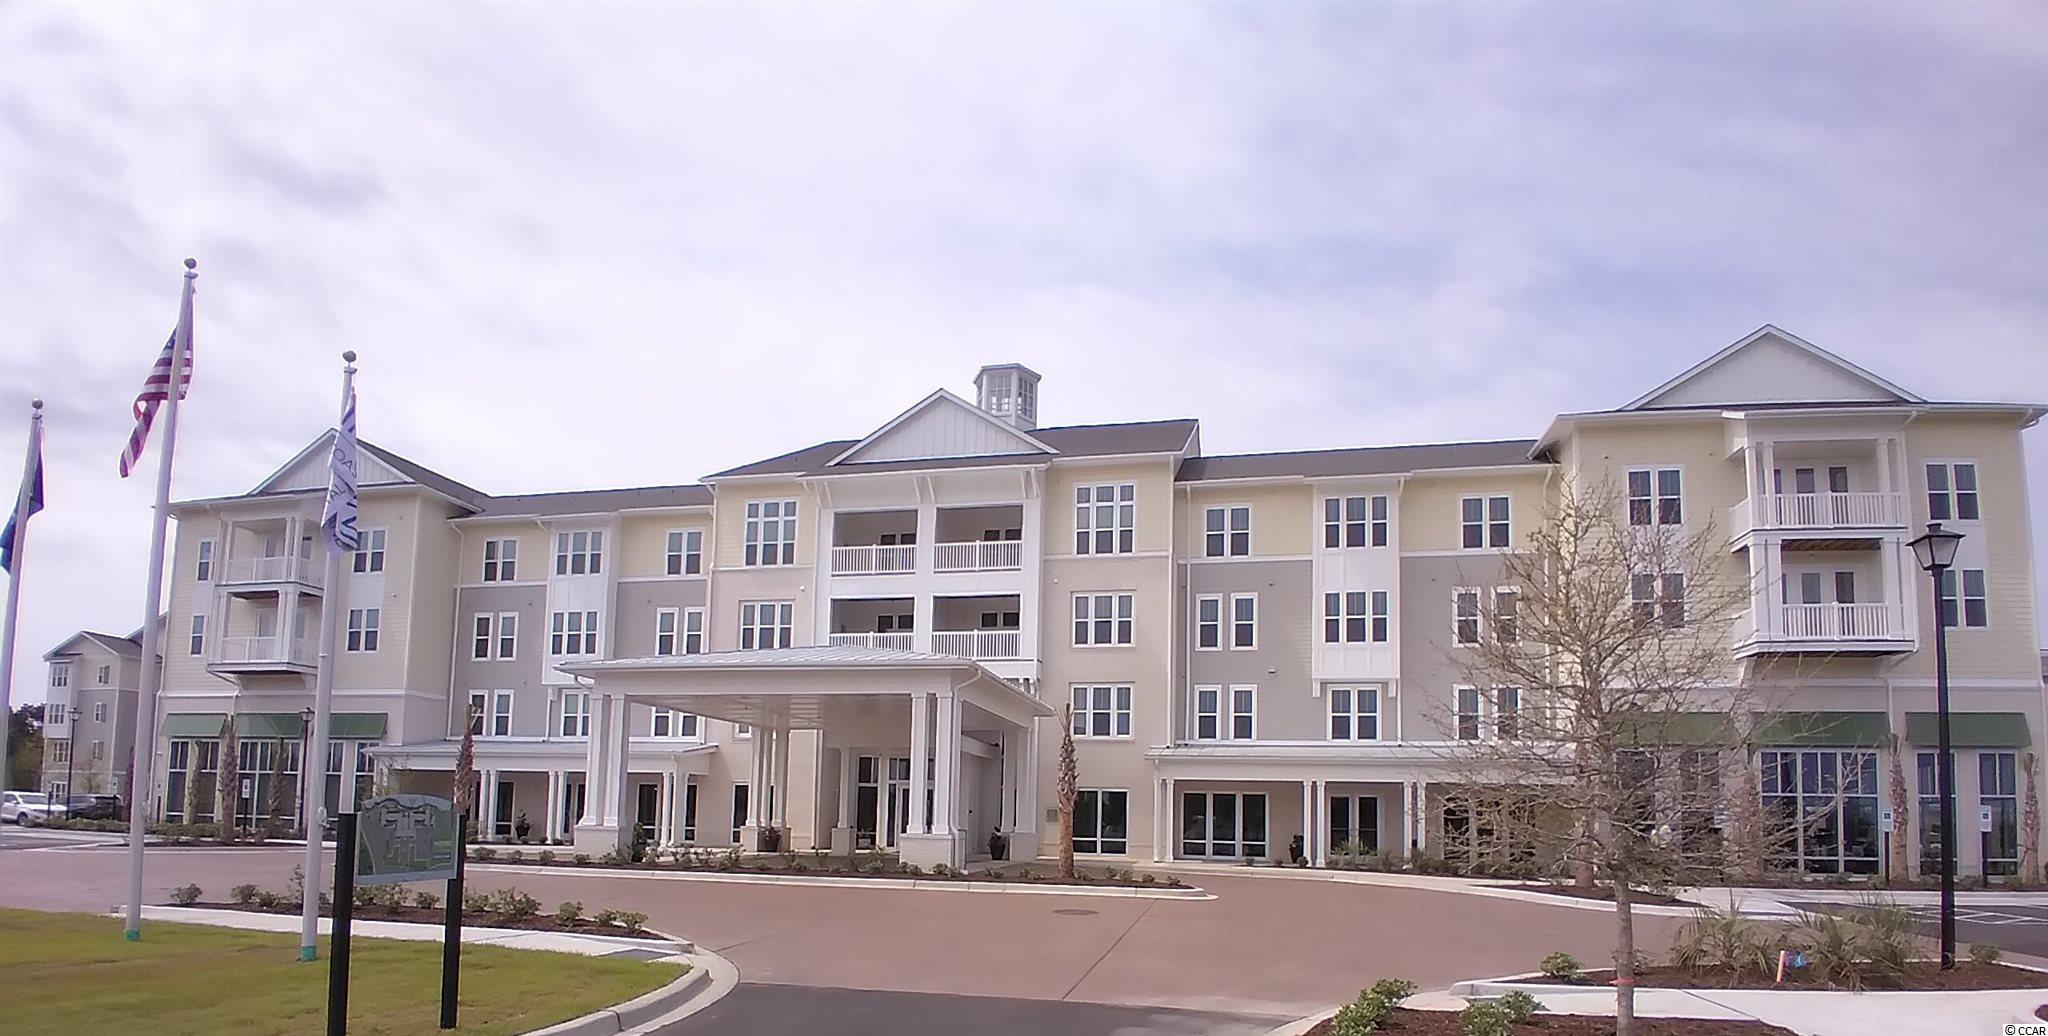 It's the time of your life... why not enjoy all its privileges? Introducing Inspire at Coastal Grand, an extraordinary senior apartment community in Myrtle Beach designed for you.  Our 55+ apartment rental community located in beautiful seaside South Carolina offers one, two, or three bedroom apartment homes. Relax in luxury with chef-inspired kitchens enhanced by granite countertops, vinyl wood flooring, stainless steel sinks and appliances, oversized closets, and spacious balconies. Inspiration is just outside your door with our senior community living features including a resort pool and outdoor courtyards, exclusive athletic club, yard games, walking trail, creative arts center, concierge services, and more.  Up to 2 pets are allowed!  Inspire Coastal Grand is 55+ luxury senior living like you've never experienced before.  This three bedroom, two bath floor plan is 1400 sq. ft. and features a private balcony.  There is a low application fee and a one time low Community Fee that is currently on special.  Call to learn more about this wonderful community or stop by for a personal tour.  We look forward to meeting you soon!  Minimum of 12 month lease is permitted.